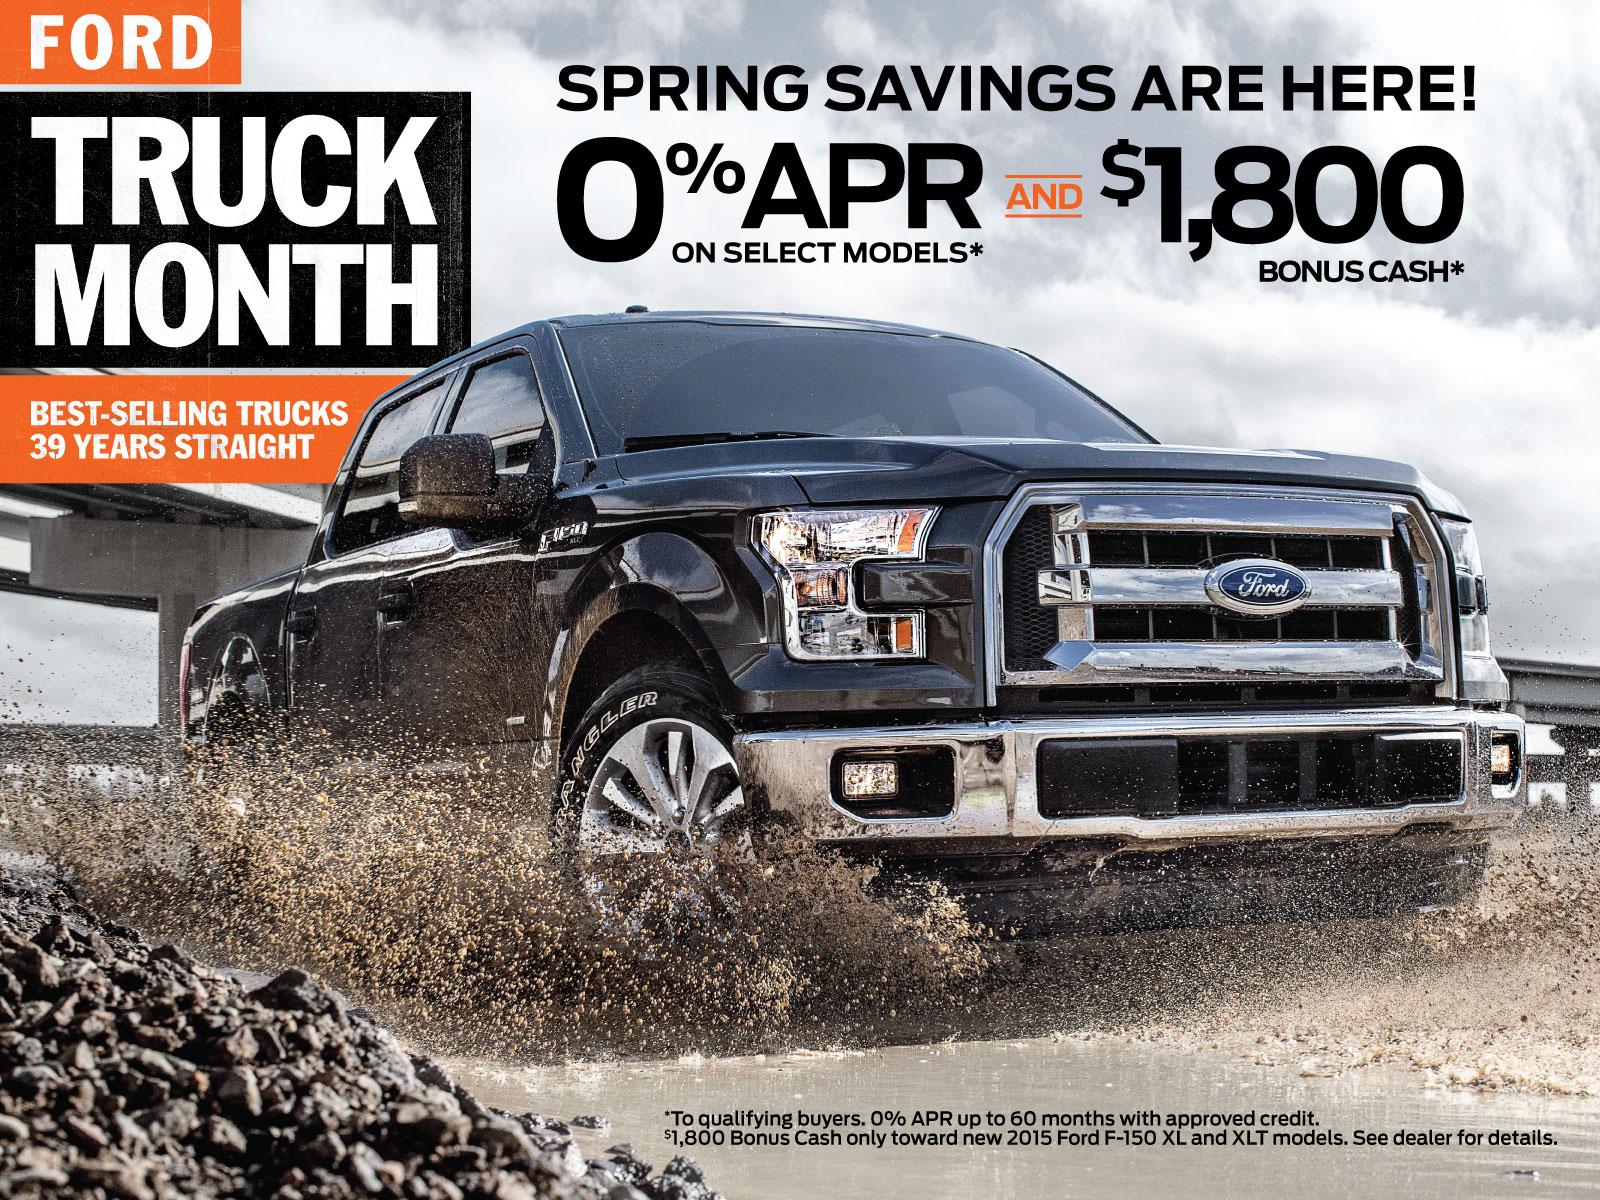 Buy a Ford F-150 Truck with 0% APR Financing